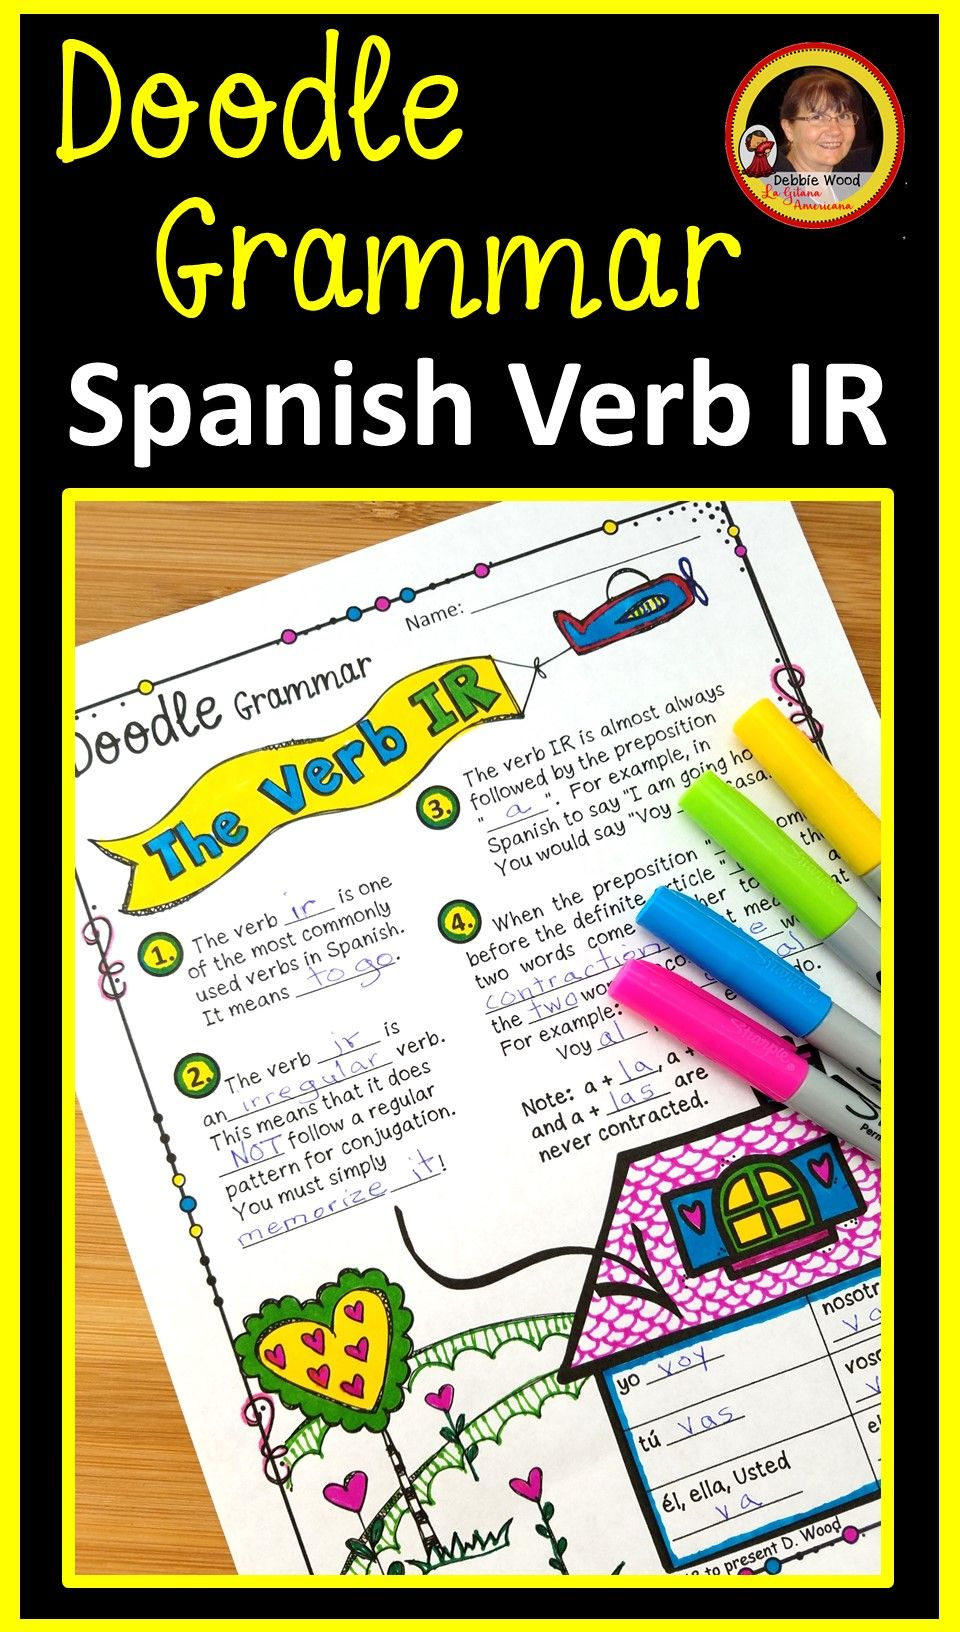 Spanish Verb IR (Doodle Grammar) | Student learning, Spanish and ...